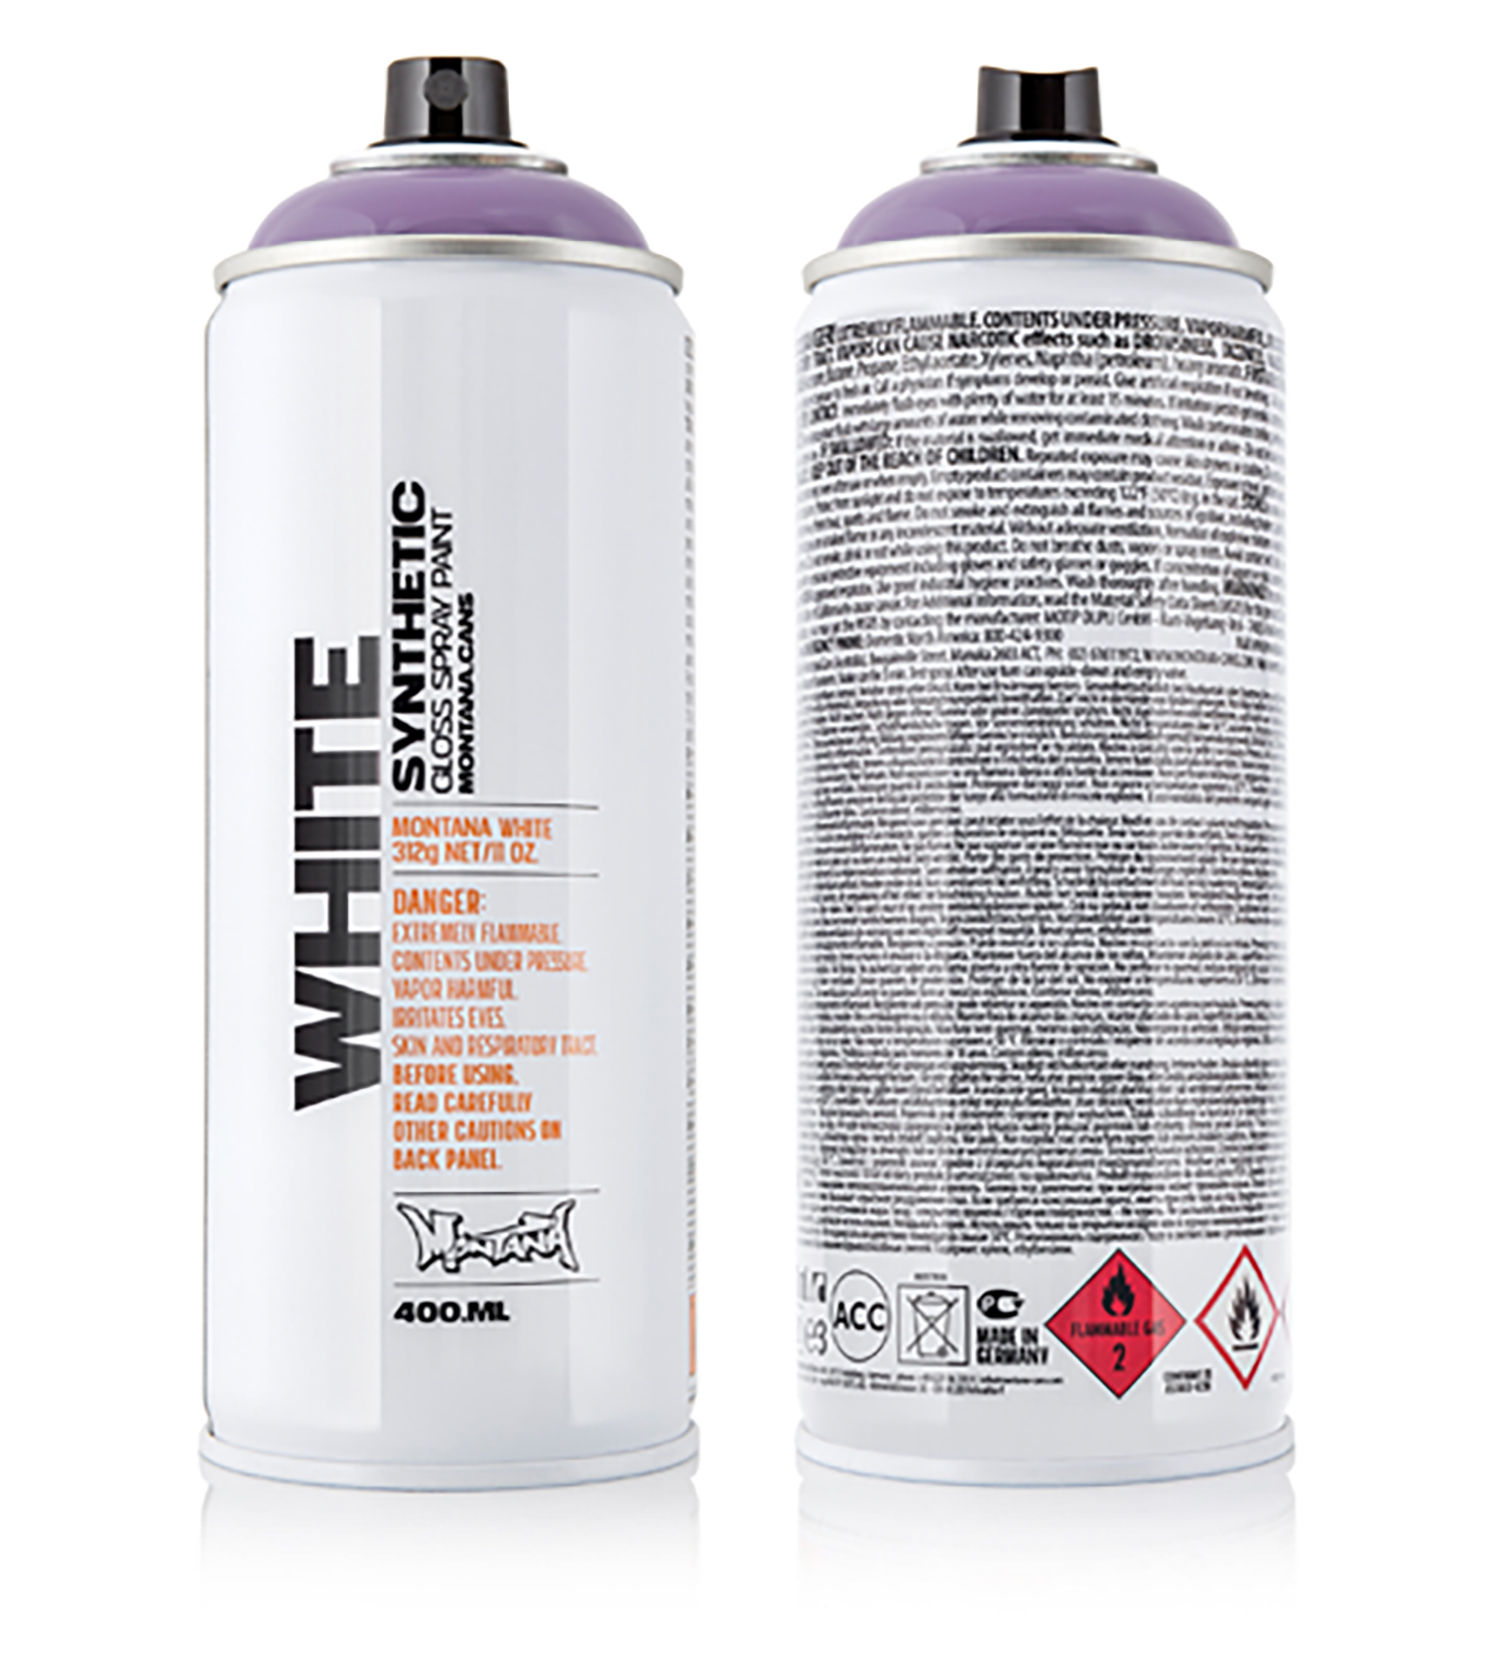 MONTANA-WHITE-SPRAY-400ML-4105